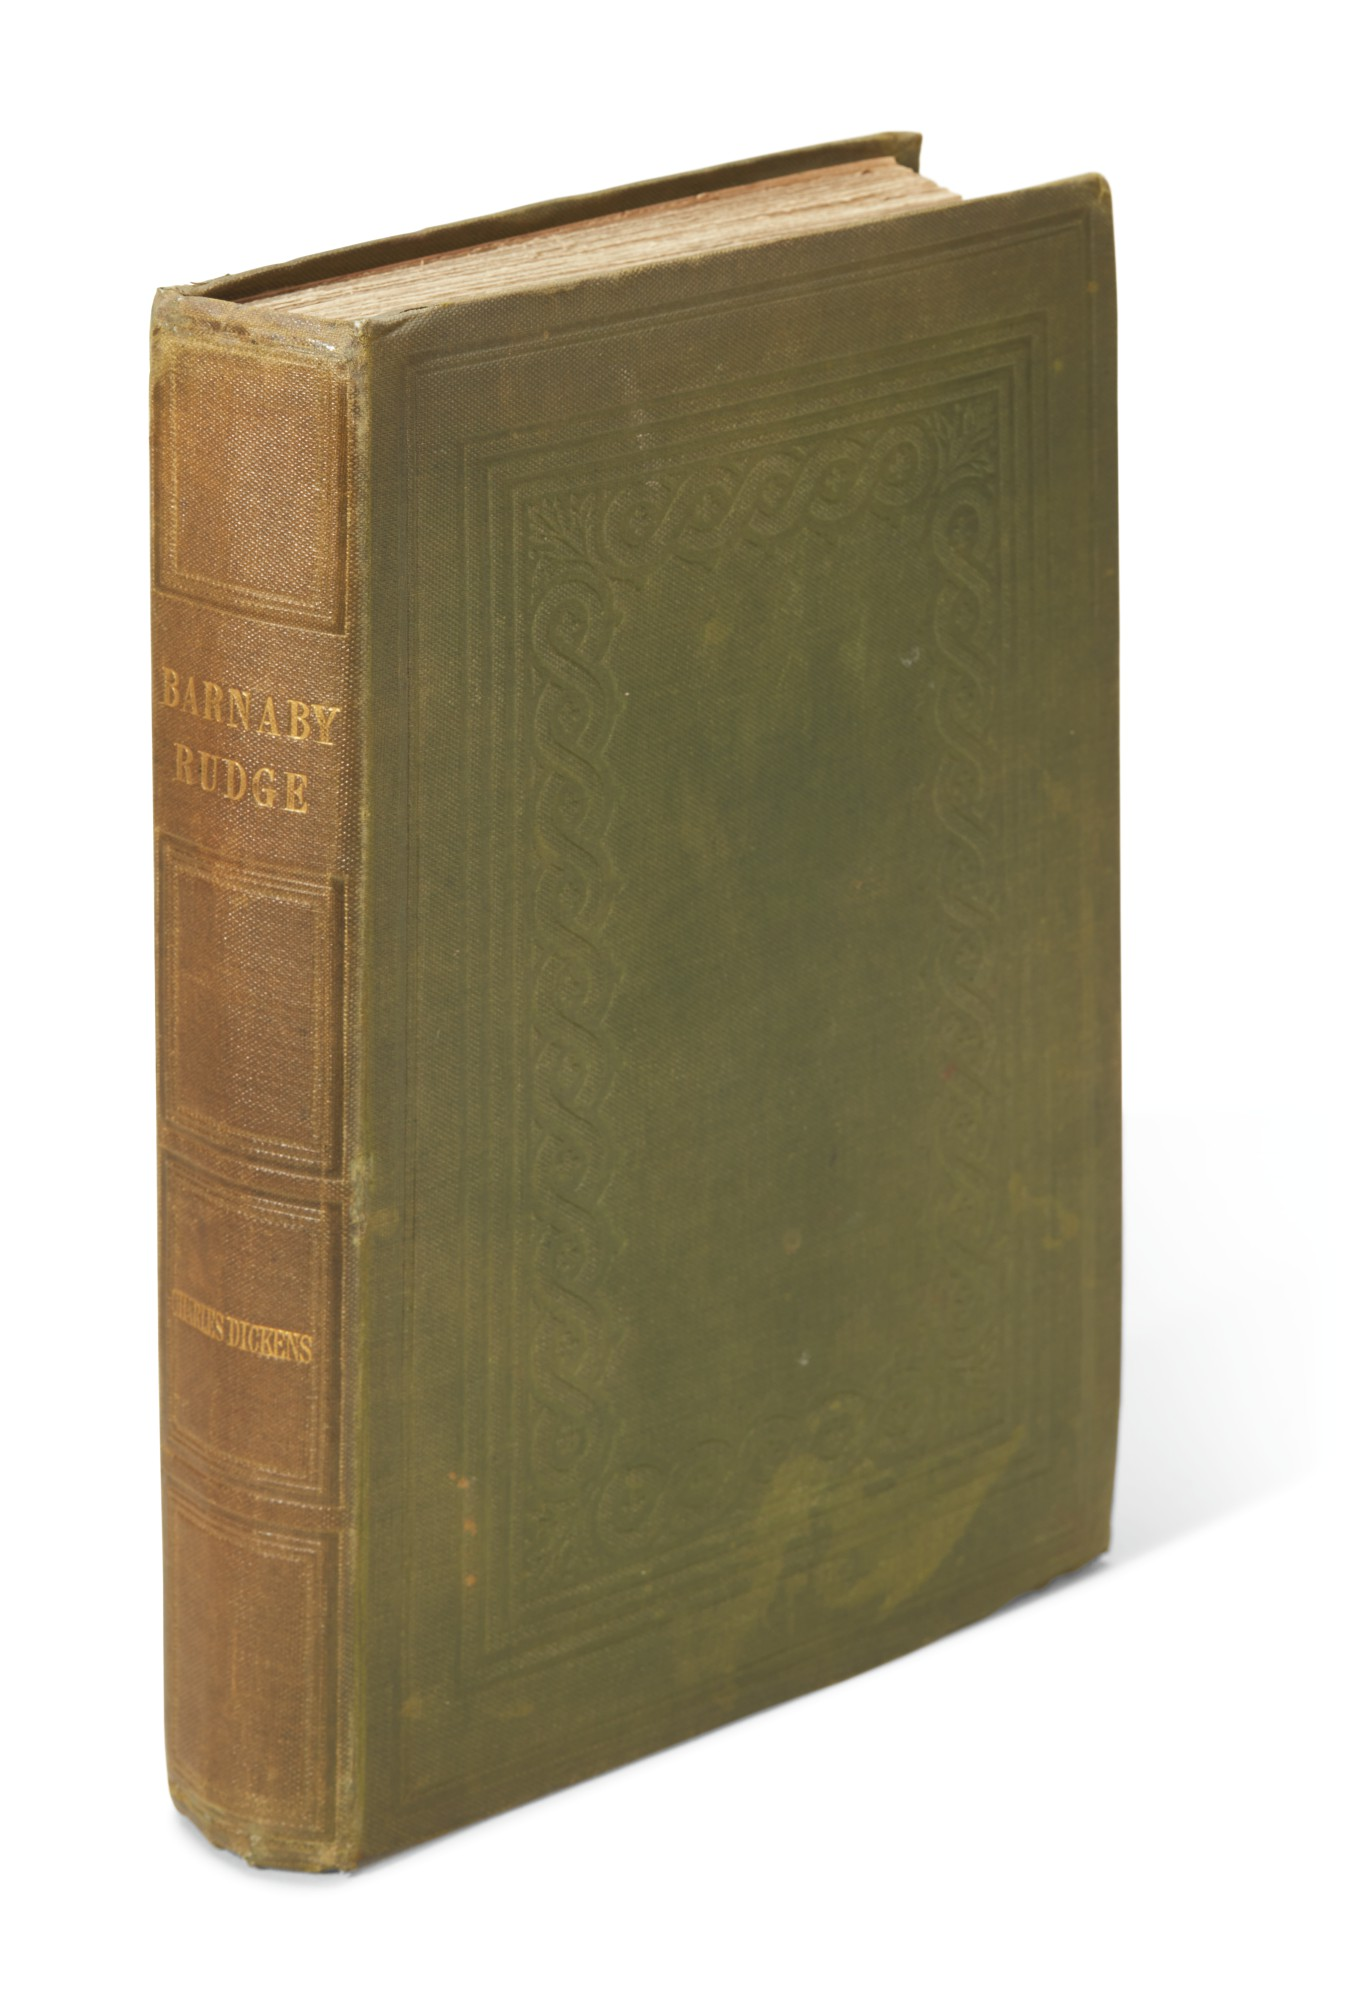 Dickens, Barnaby Rudge, 1841, first separate edition, bound from the weekly parts, binding variant